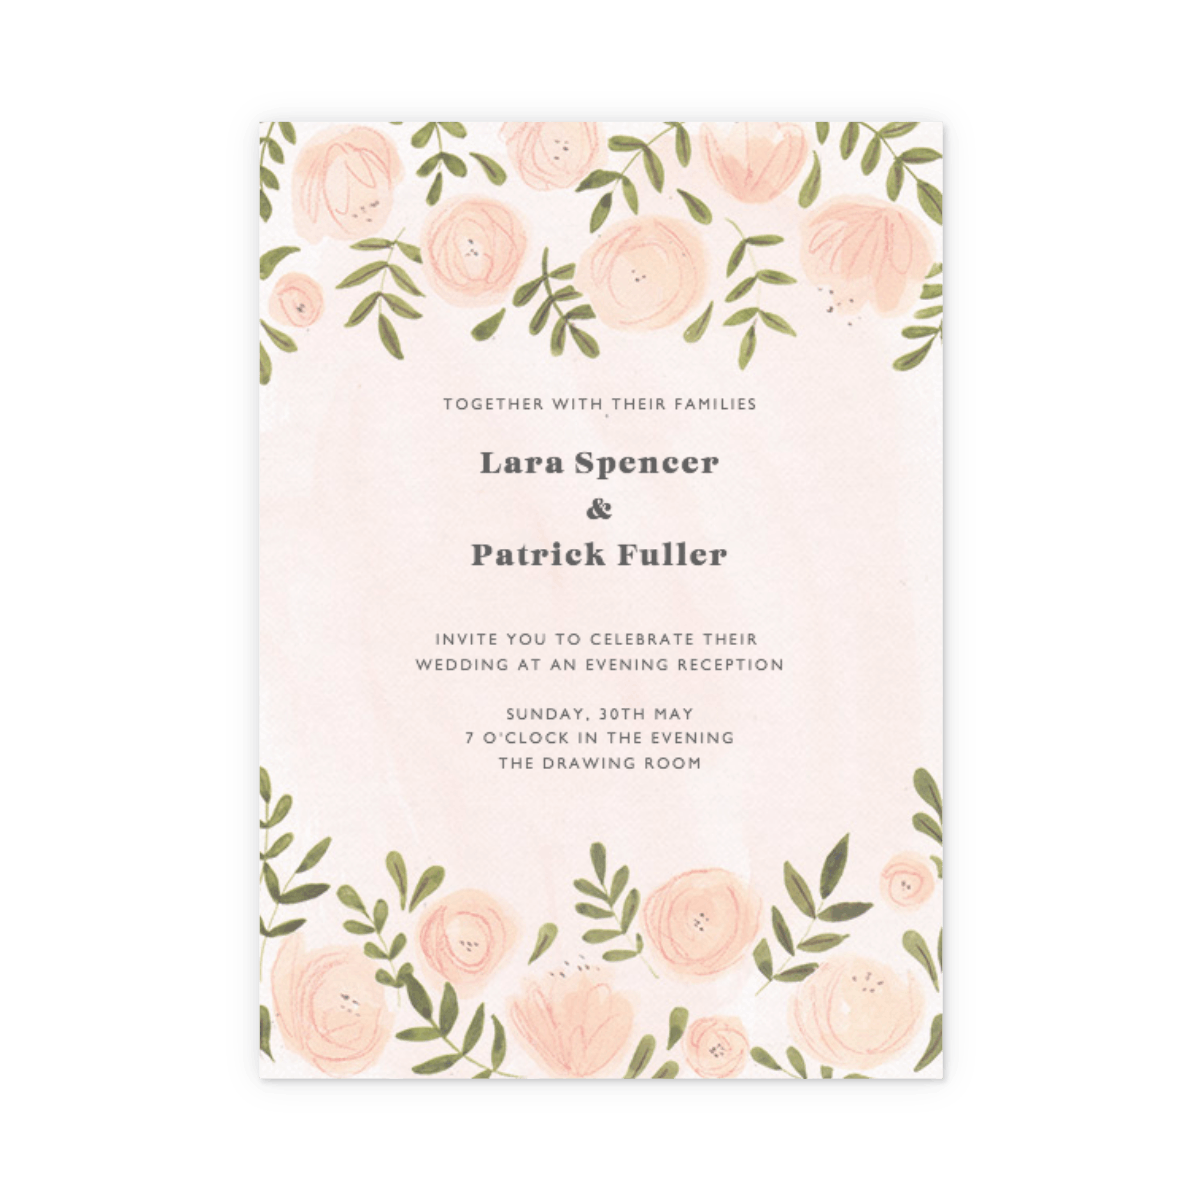 Https%3a%2f%2fwww.papier.com%2fproduct image%2f5798%2f4%2fblush florals 1513 vorderseite 1459955103.png?ixlib=rb 1.1